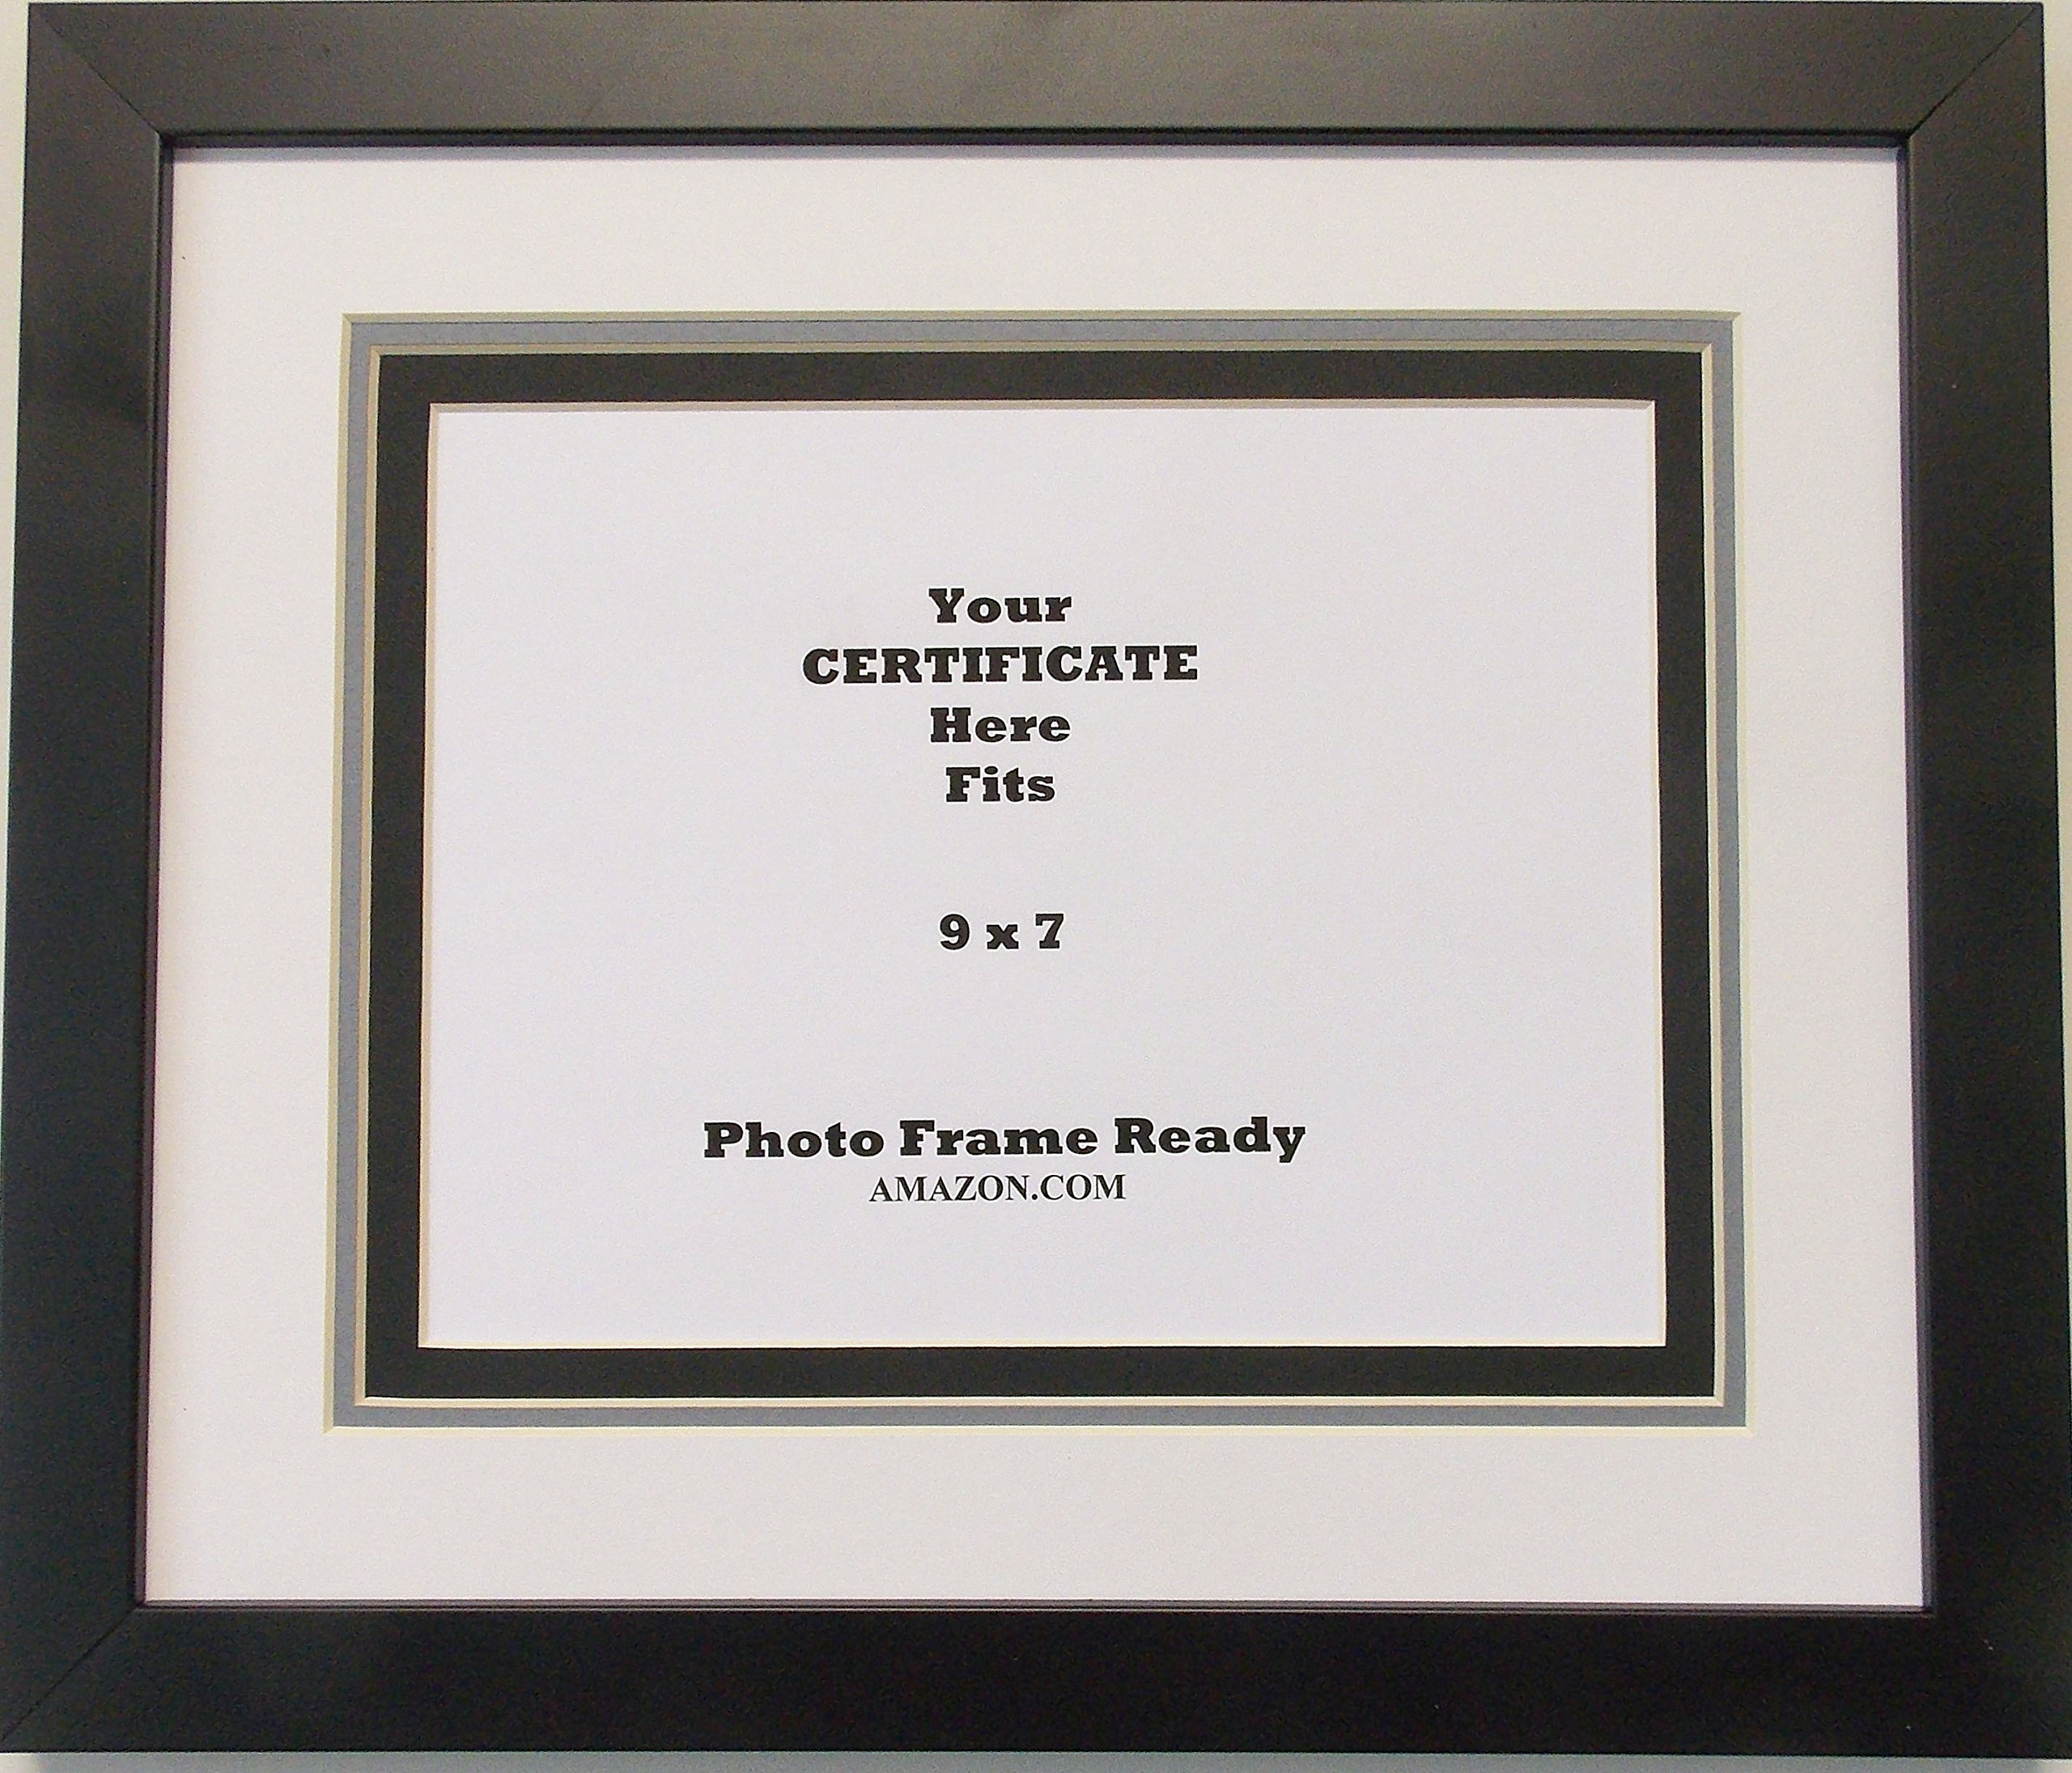 Graduation University Diploma Certificate Picture Frame Holds 9x7 Certificate Triple Matted Black Frame